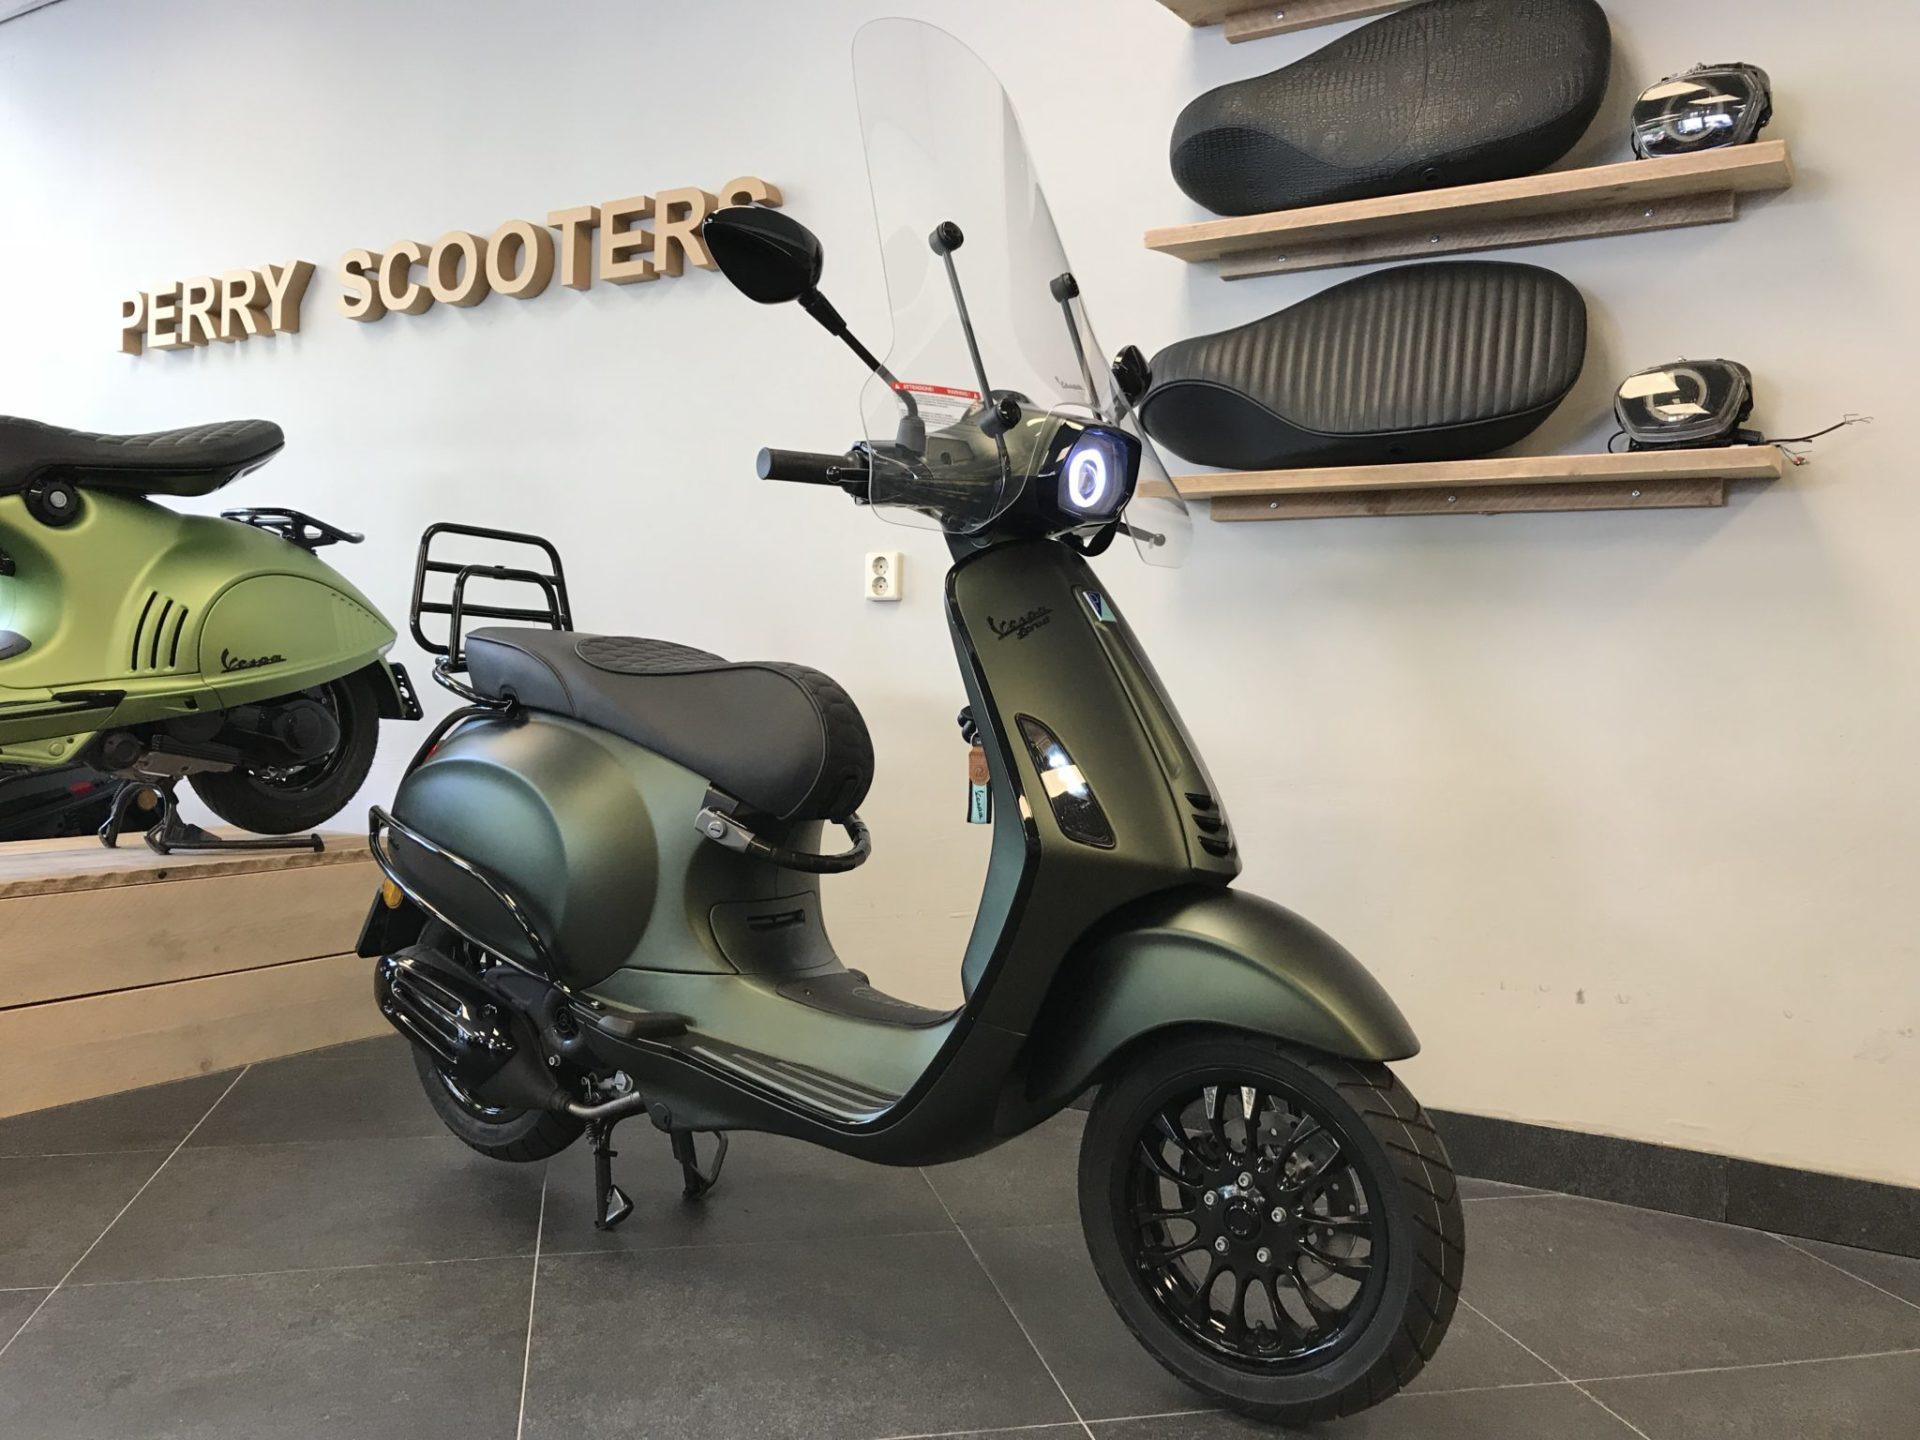 Fabulous Vespa Sprint Candy Green | OF27